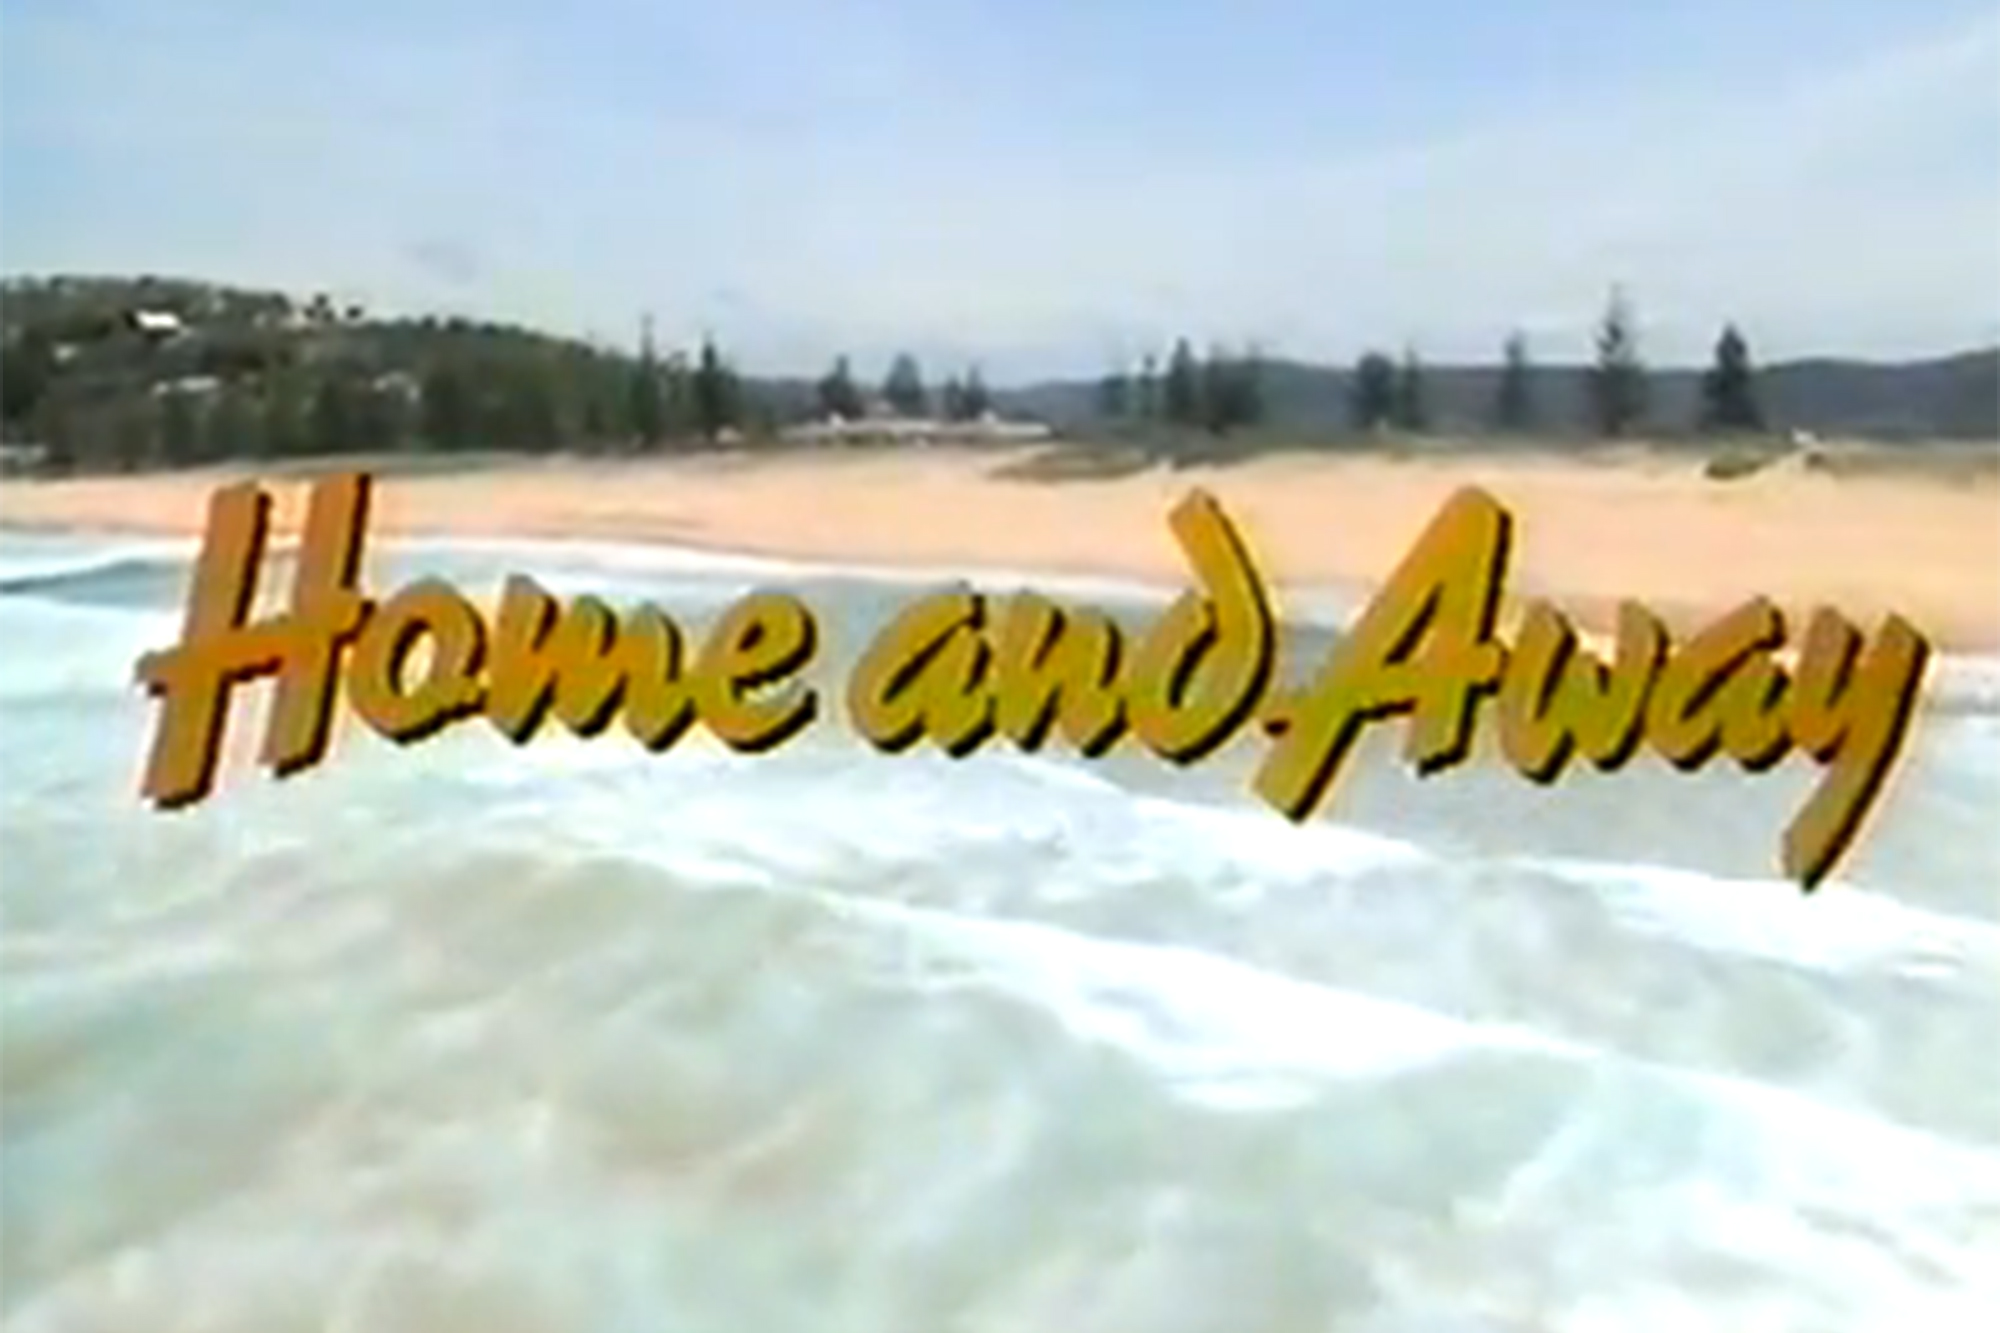 Home and Away (1996)